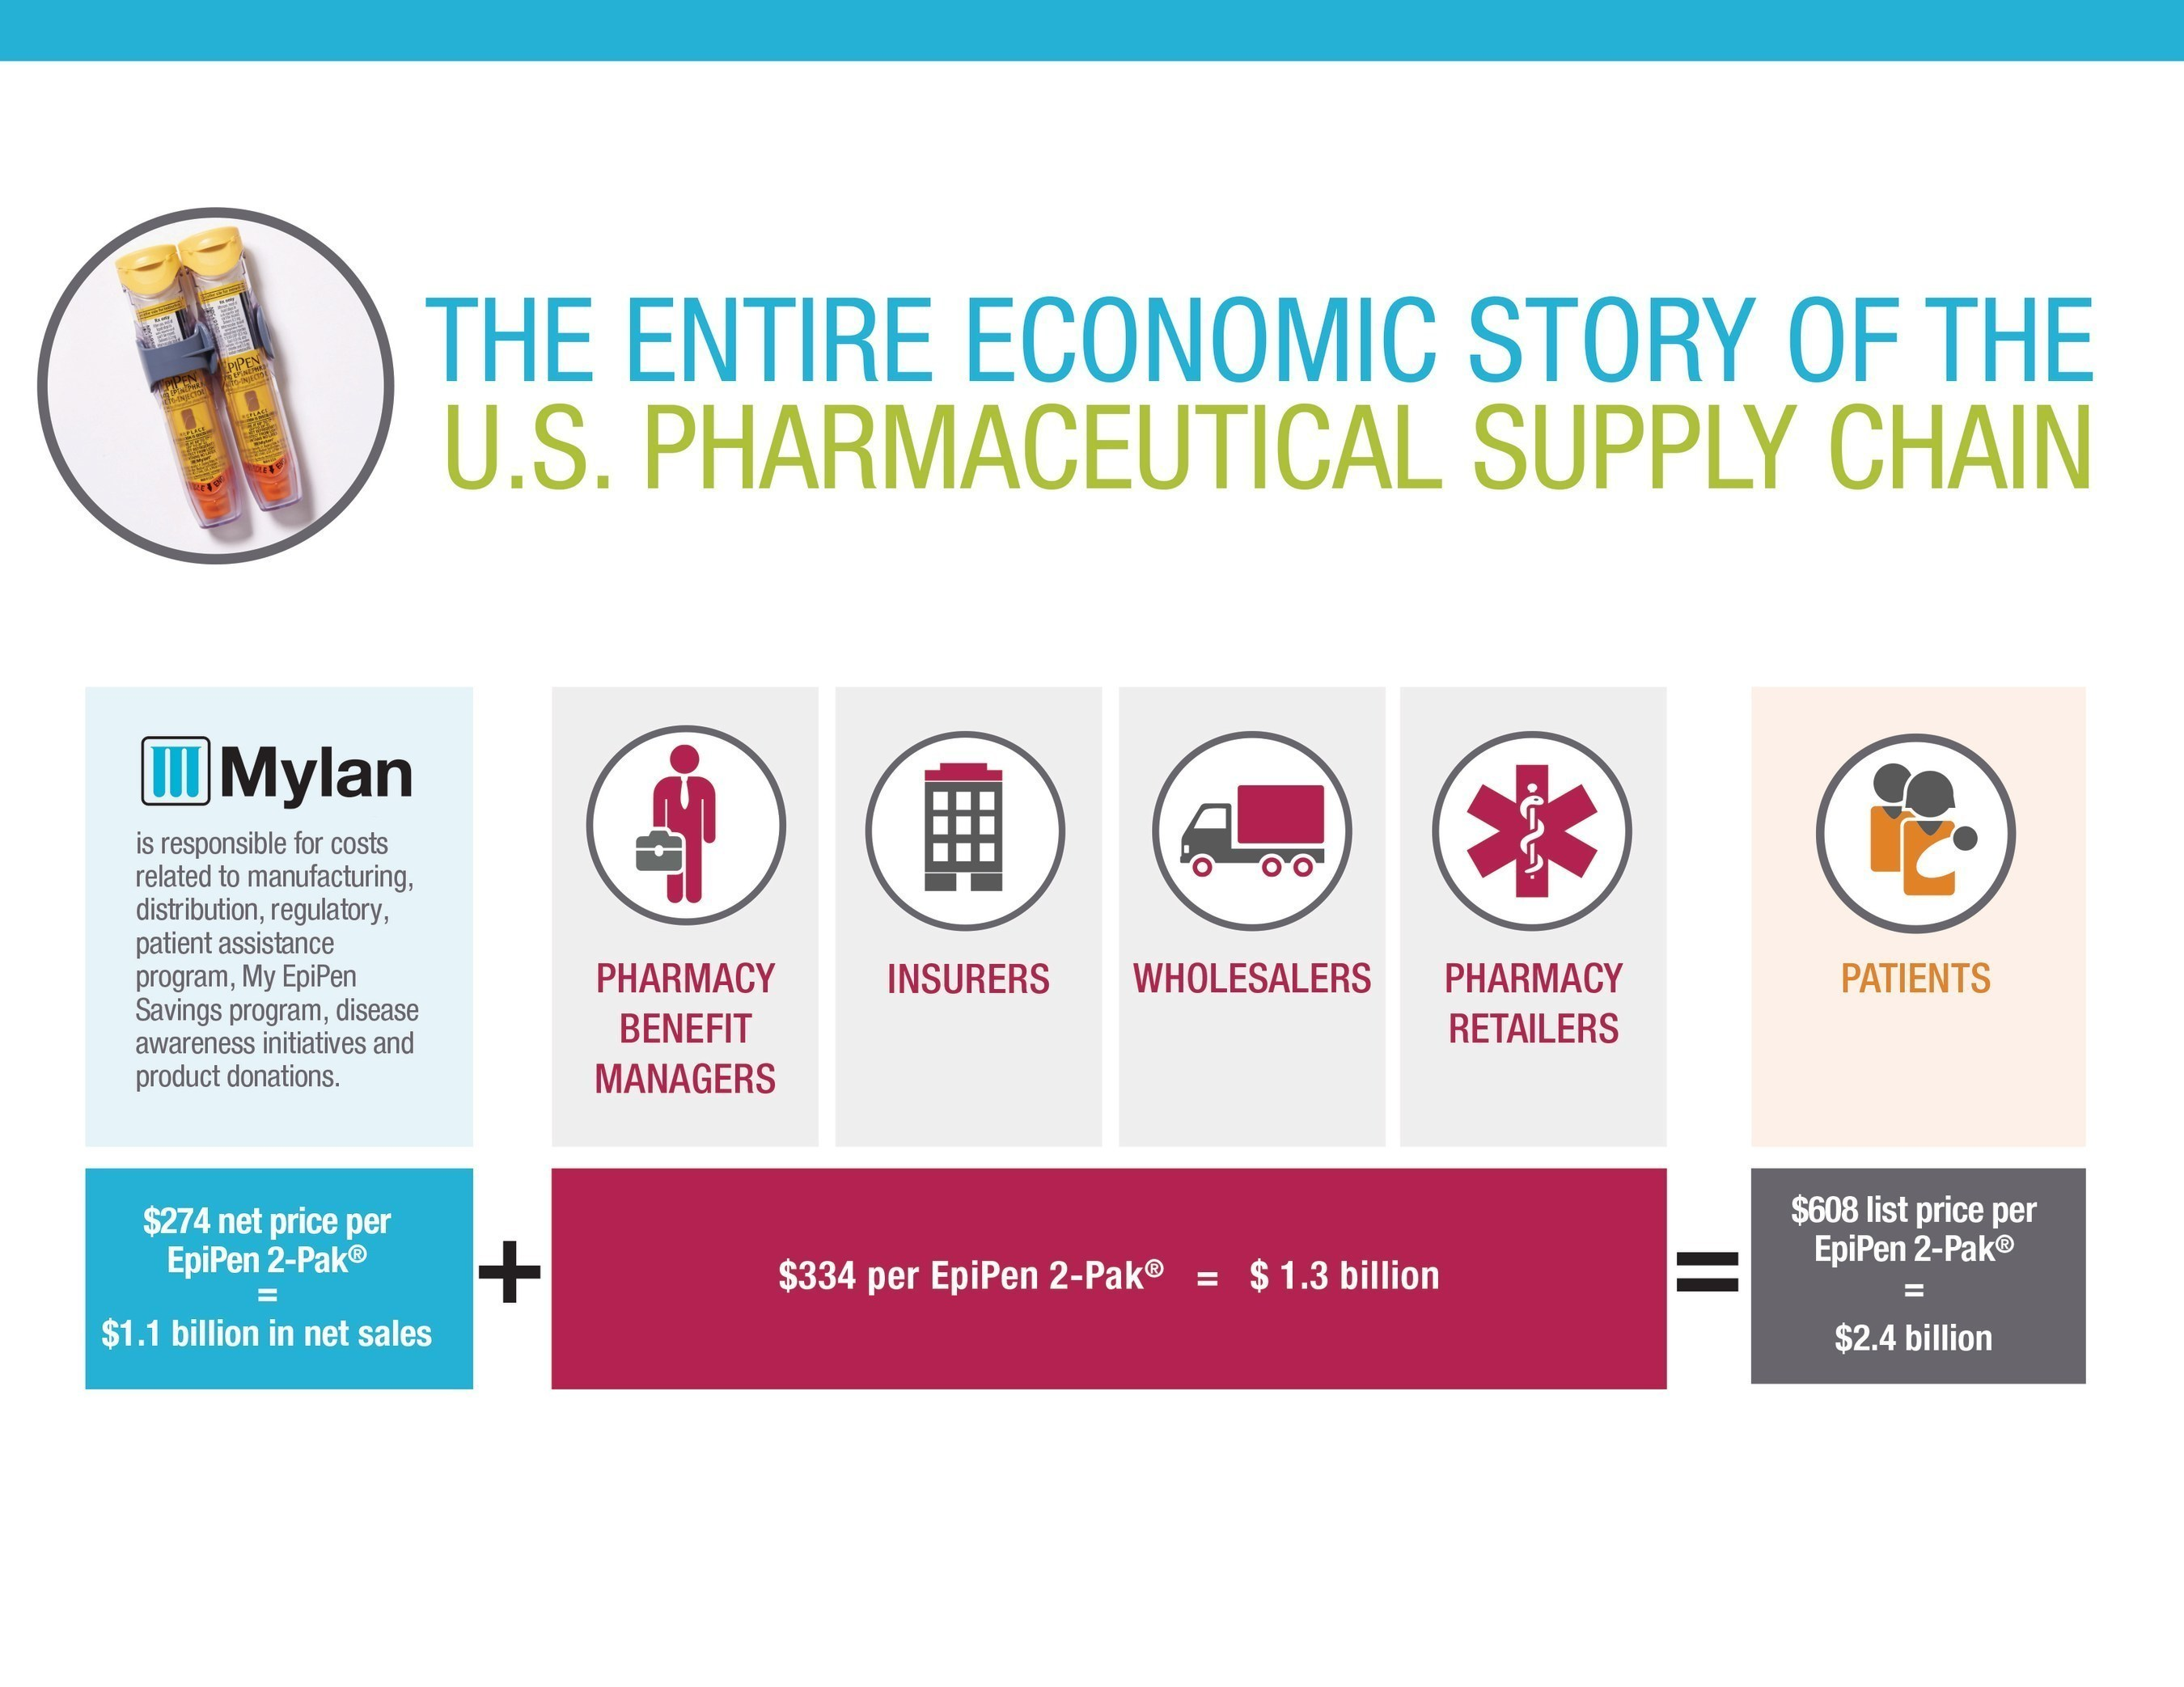 The Entire Economic Story of the U.S. Pharmaceutical Supply Chain